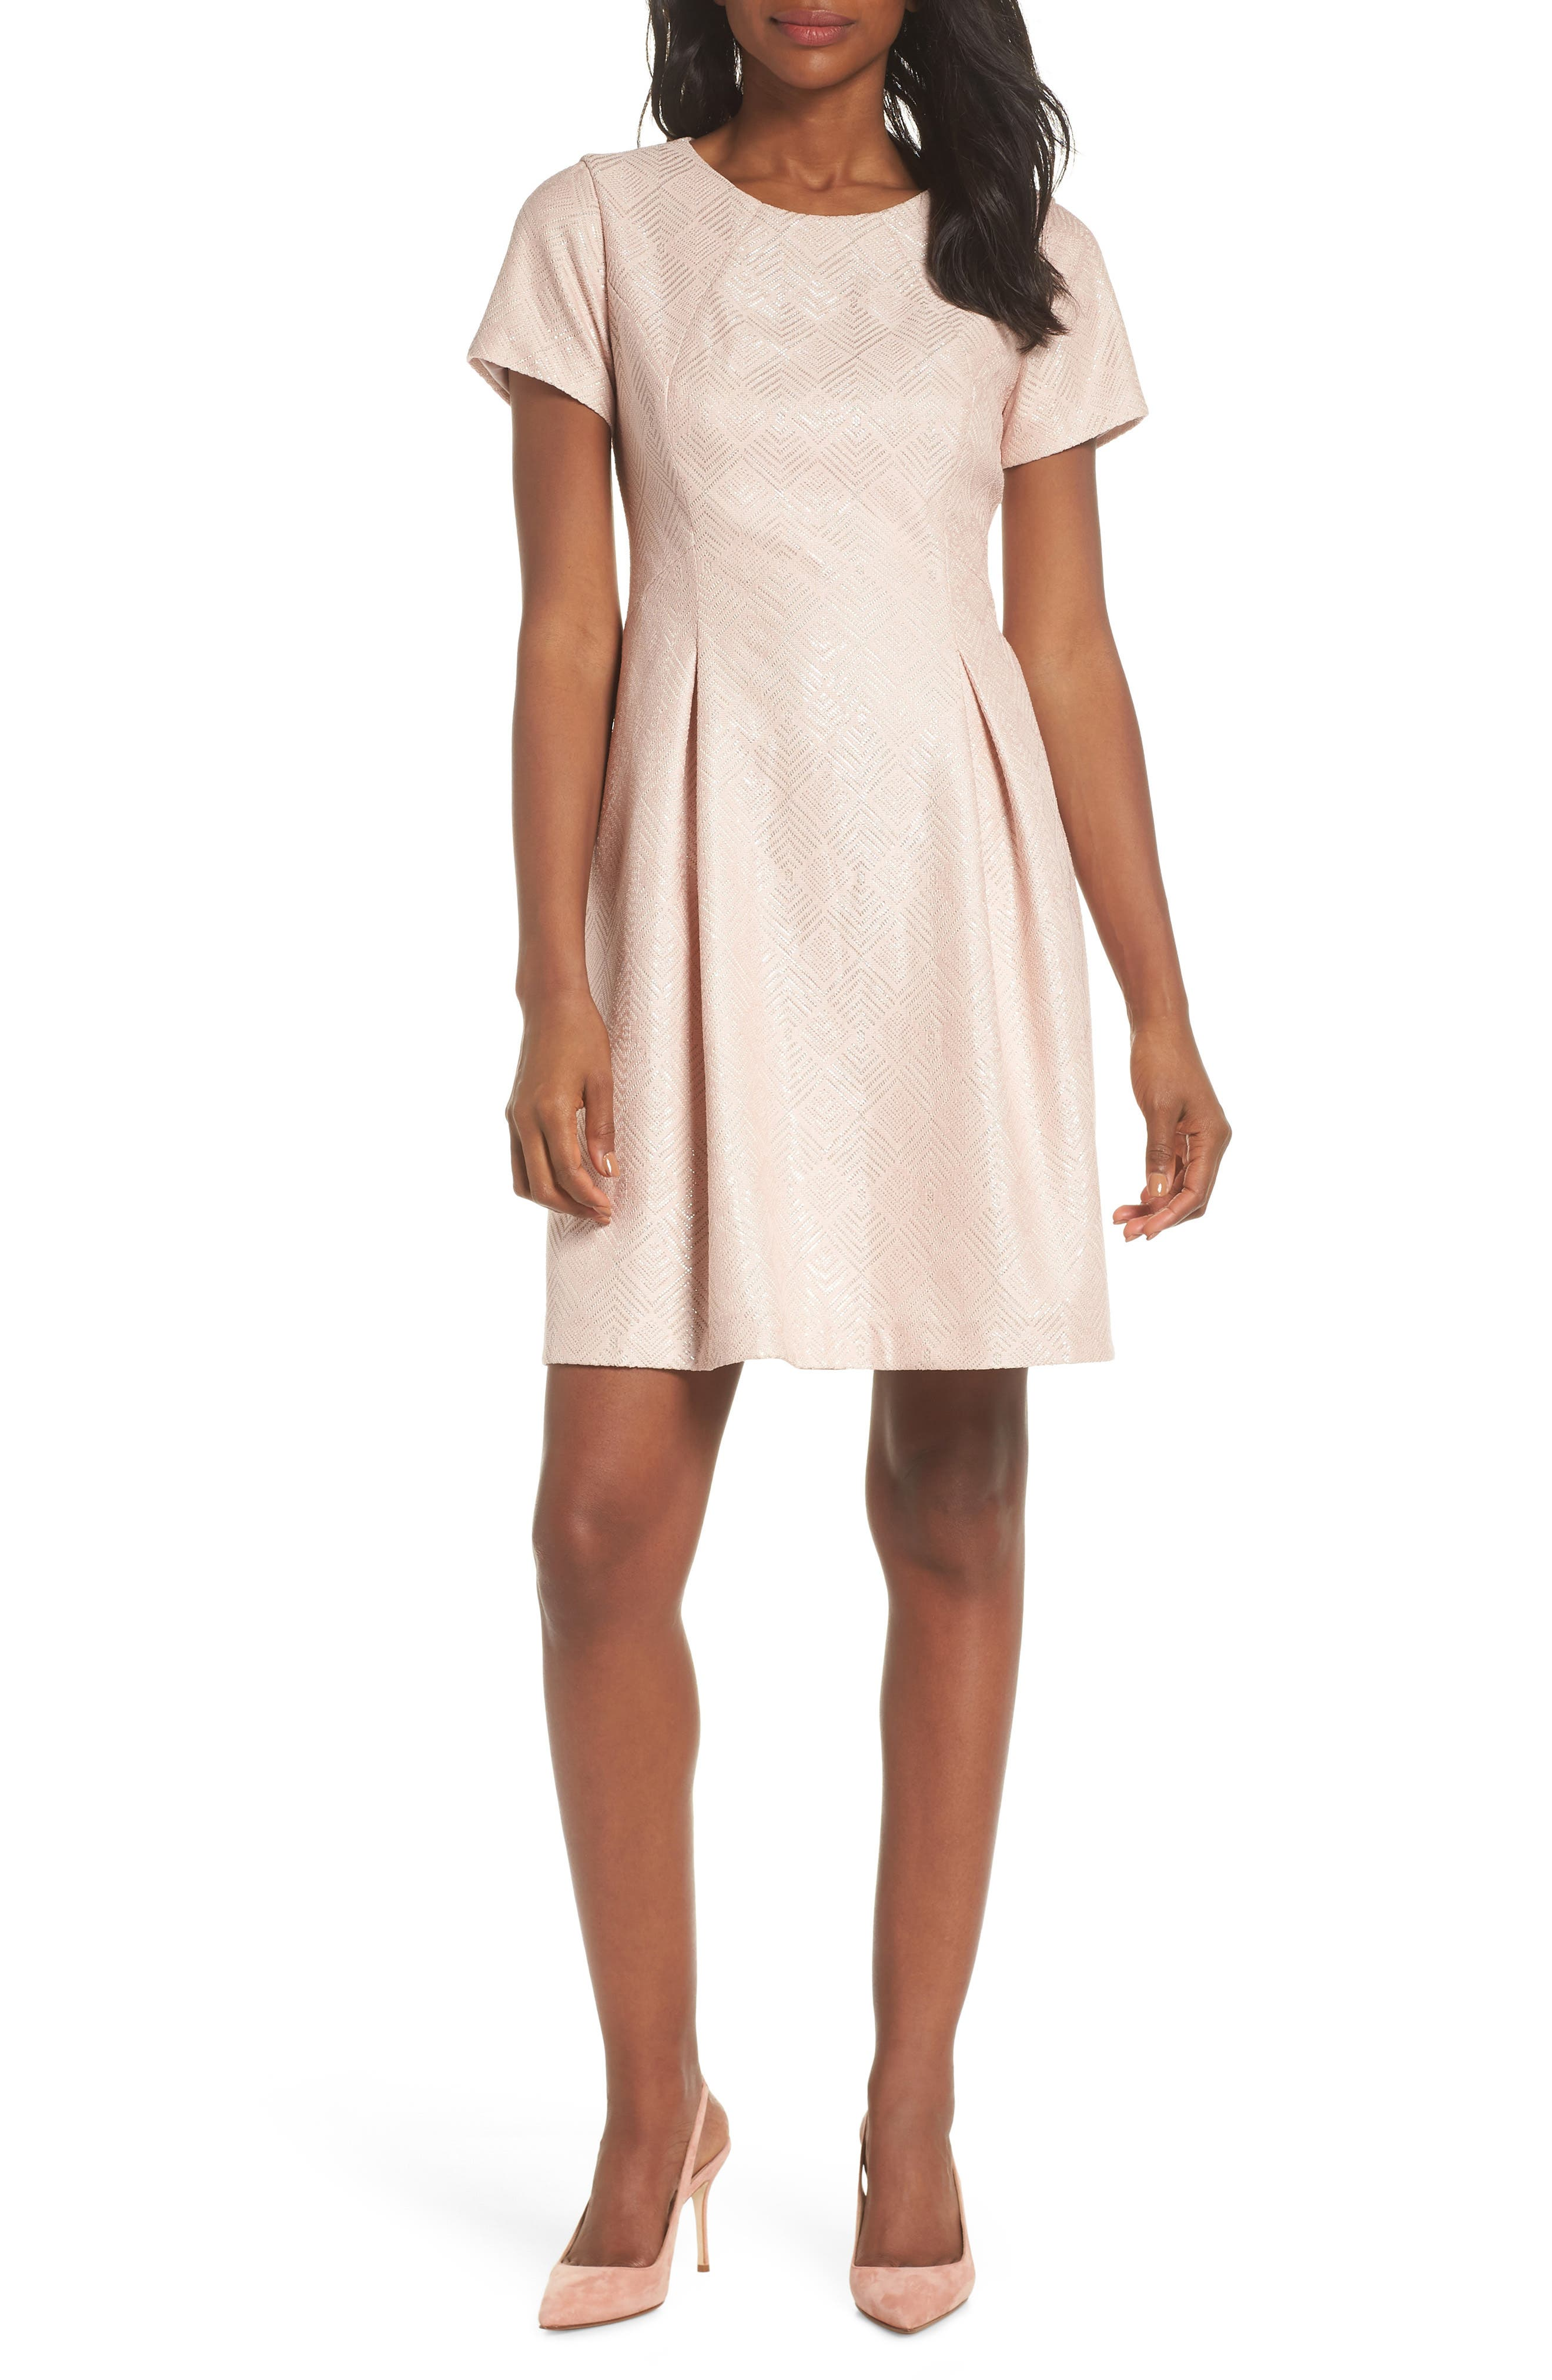 Vince Camuto Bonded Lace Fit & Flare Dress, Pink